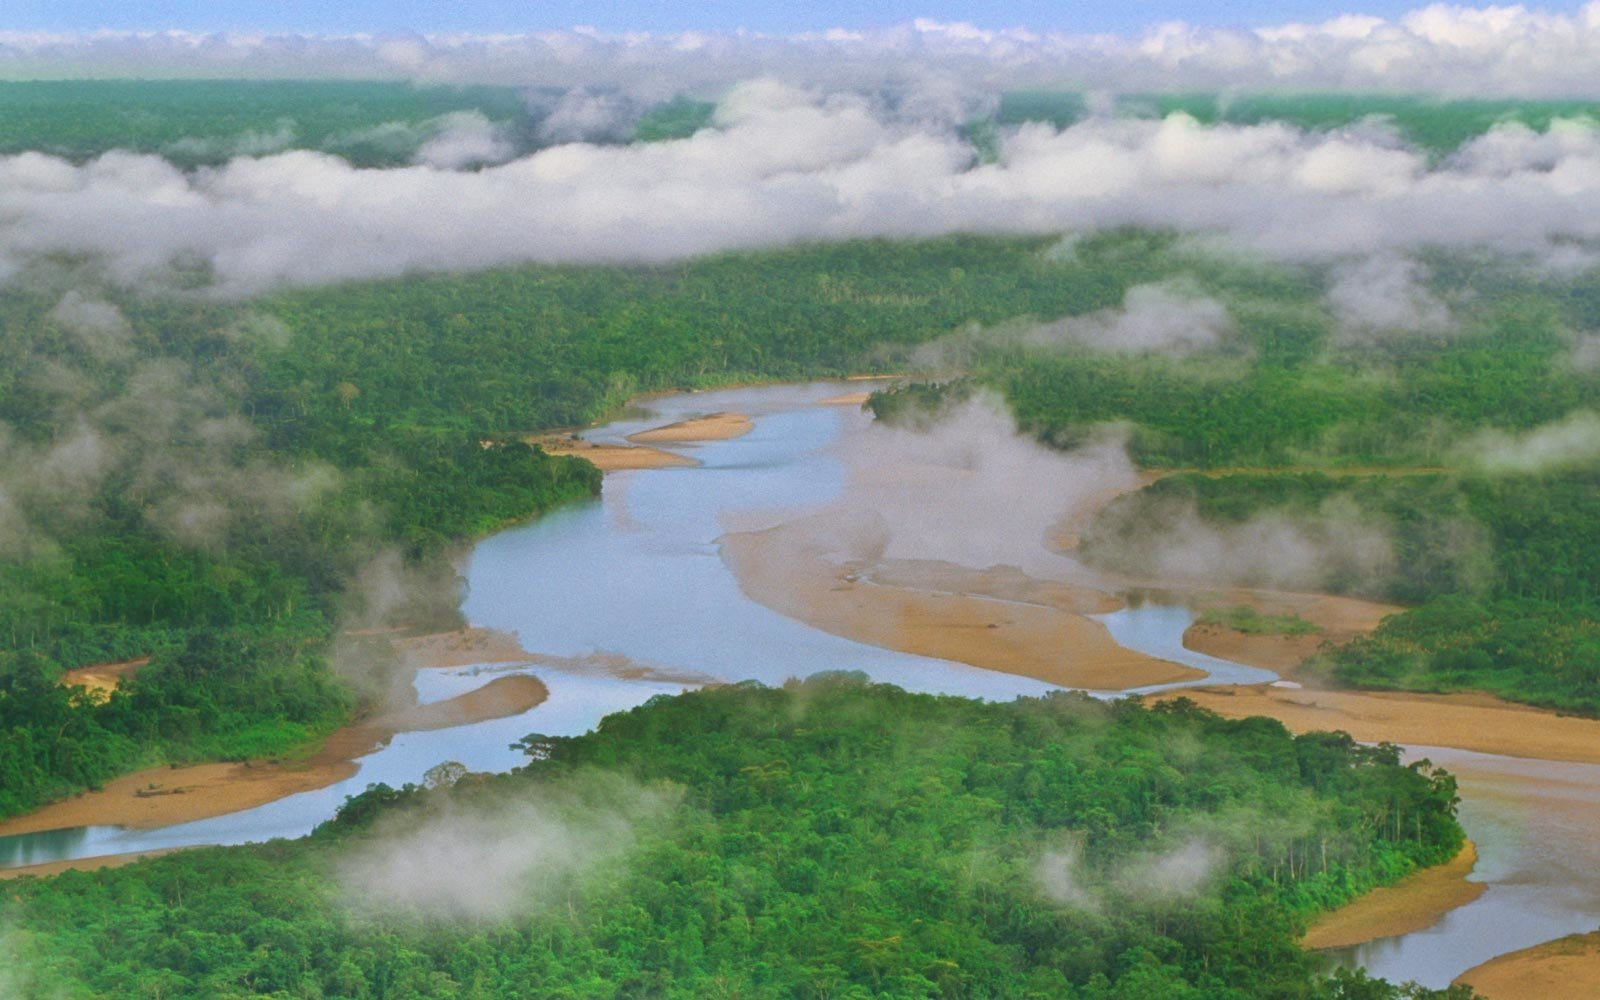 Tambopata river winding through lowland rainforest, Tambopata National Reserve, Peru